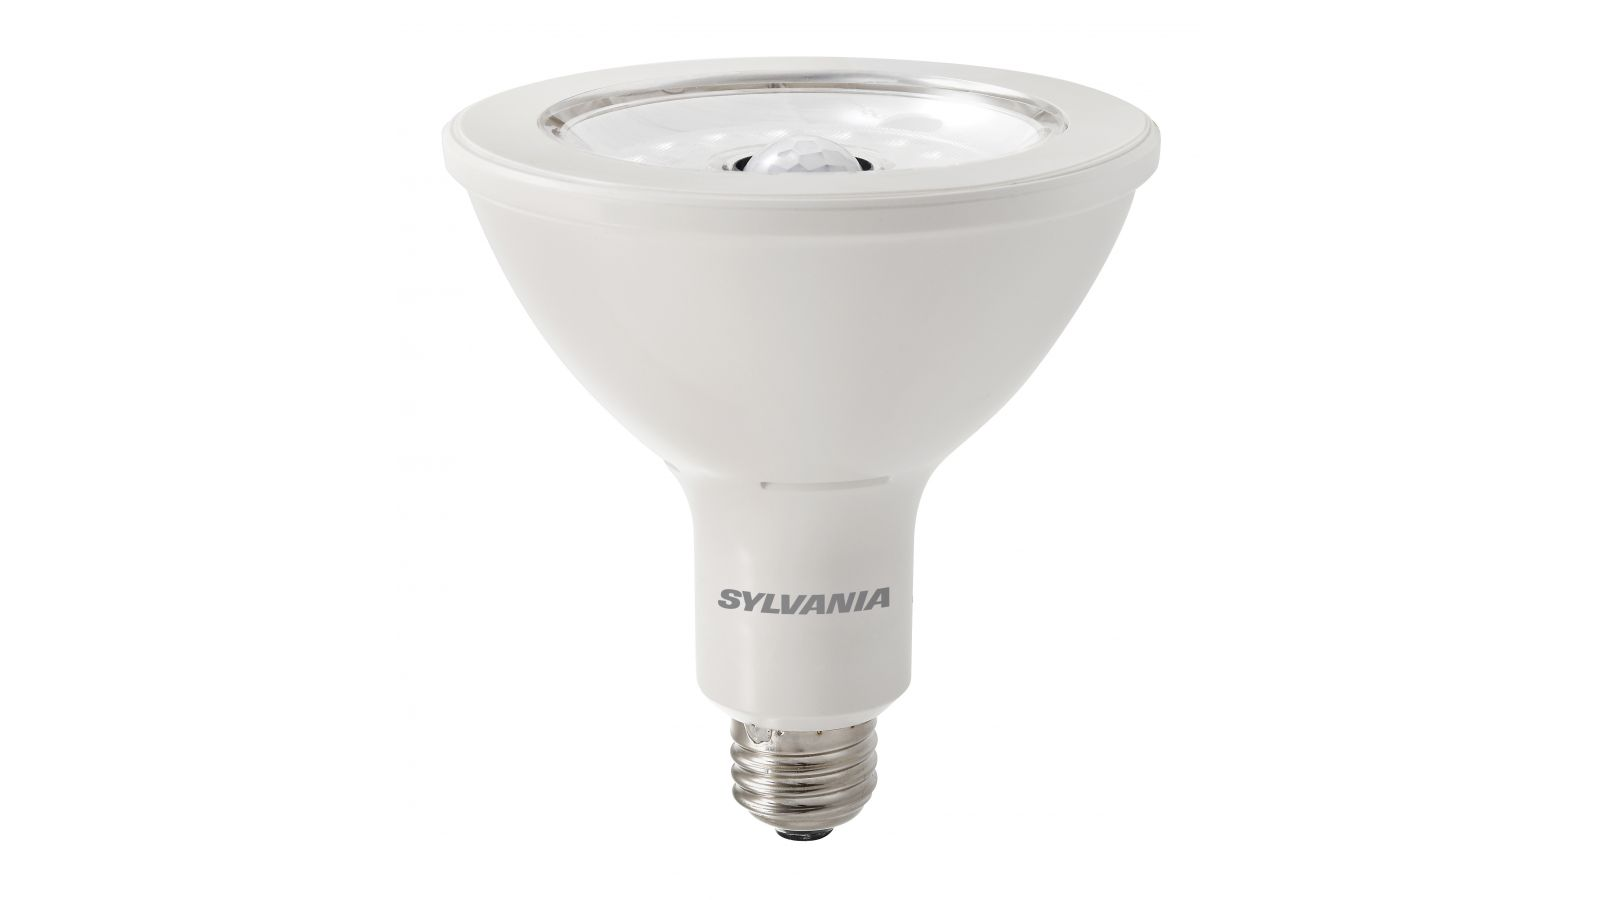 SYLVANIA ULTRA LED™ Motion Sensor PAR38